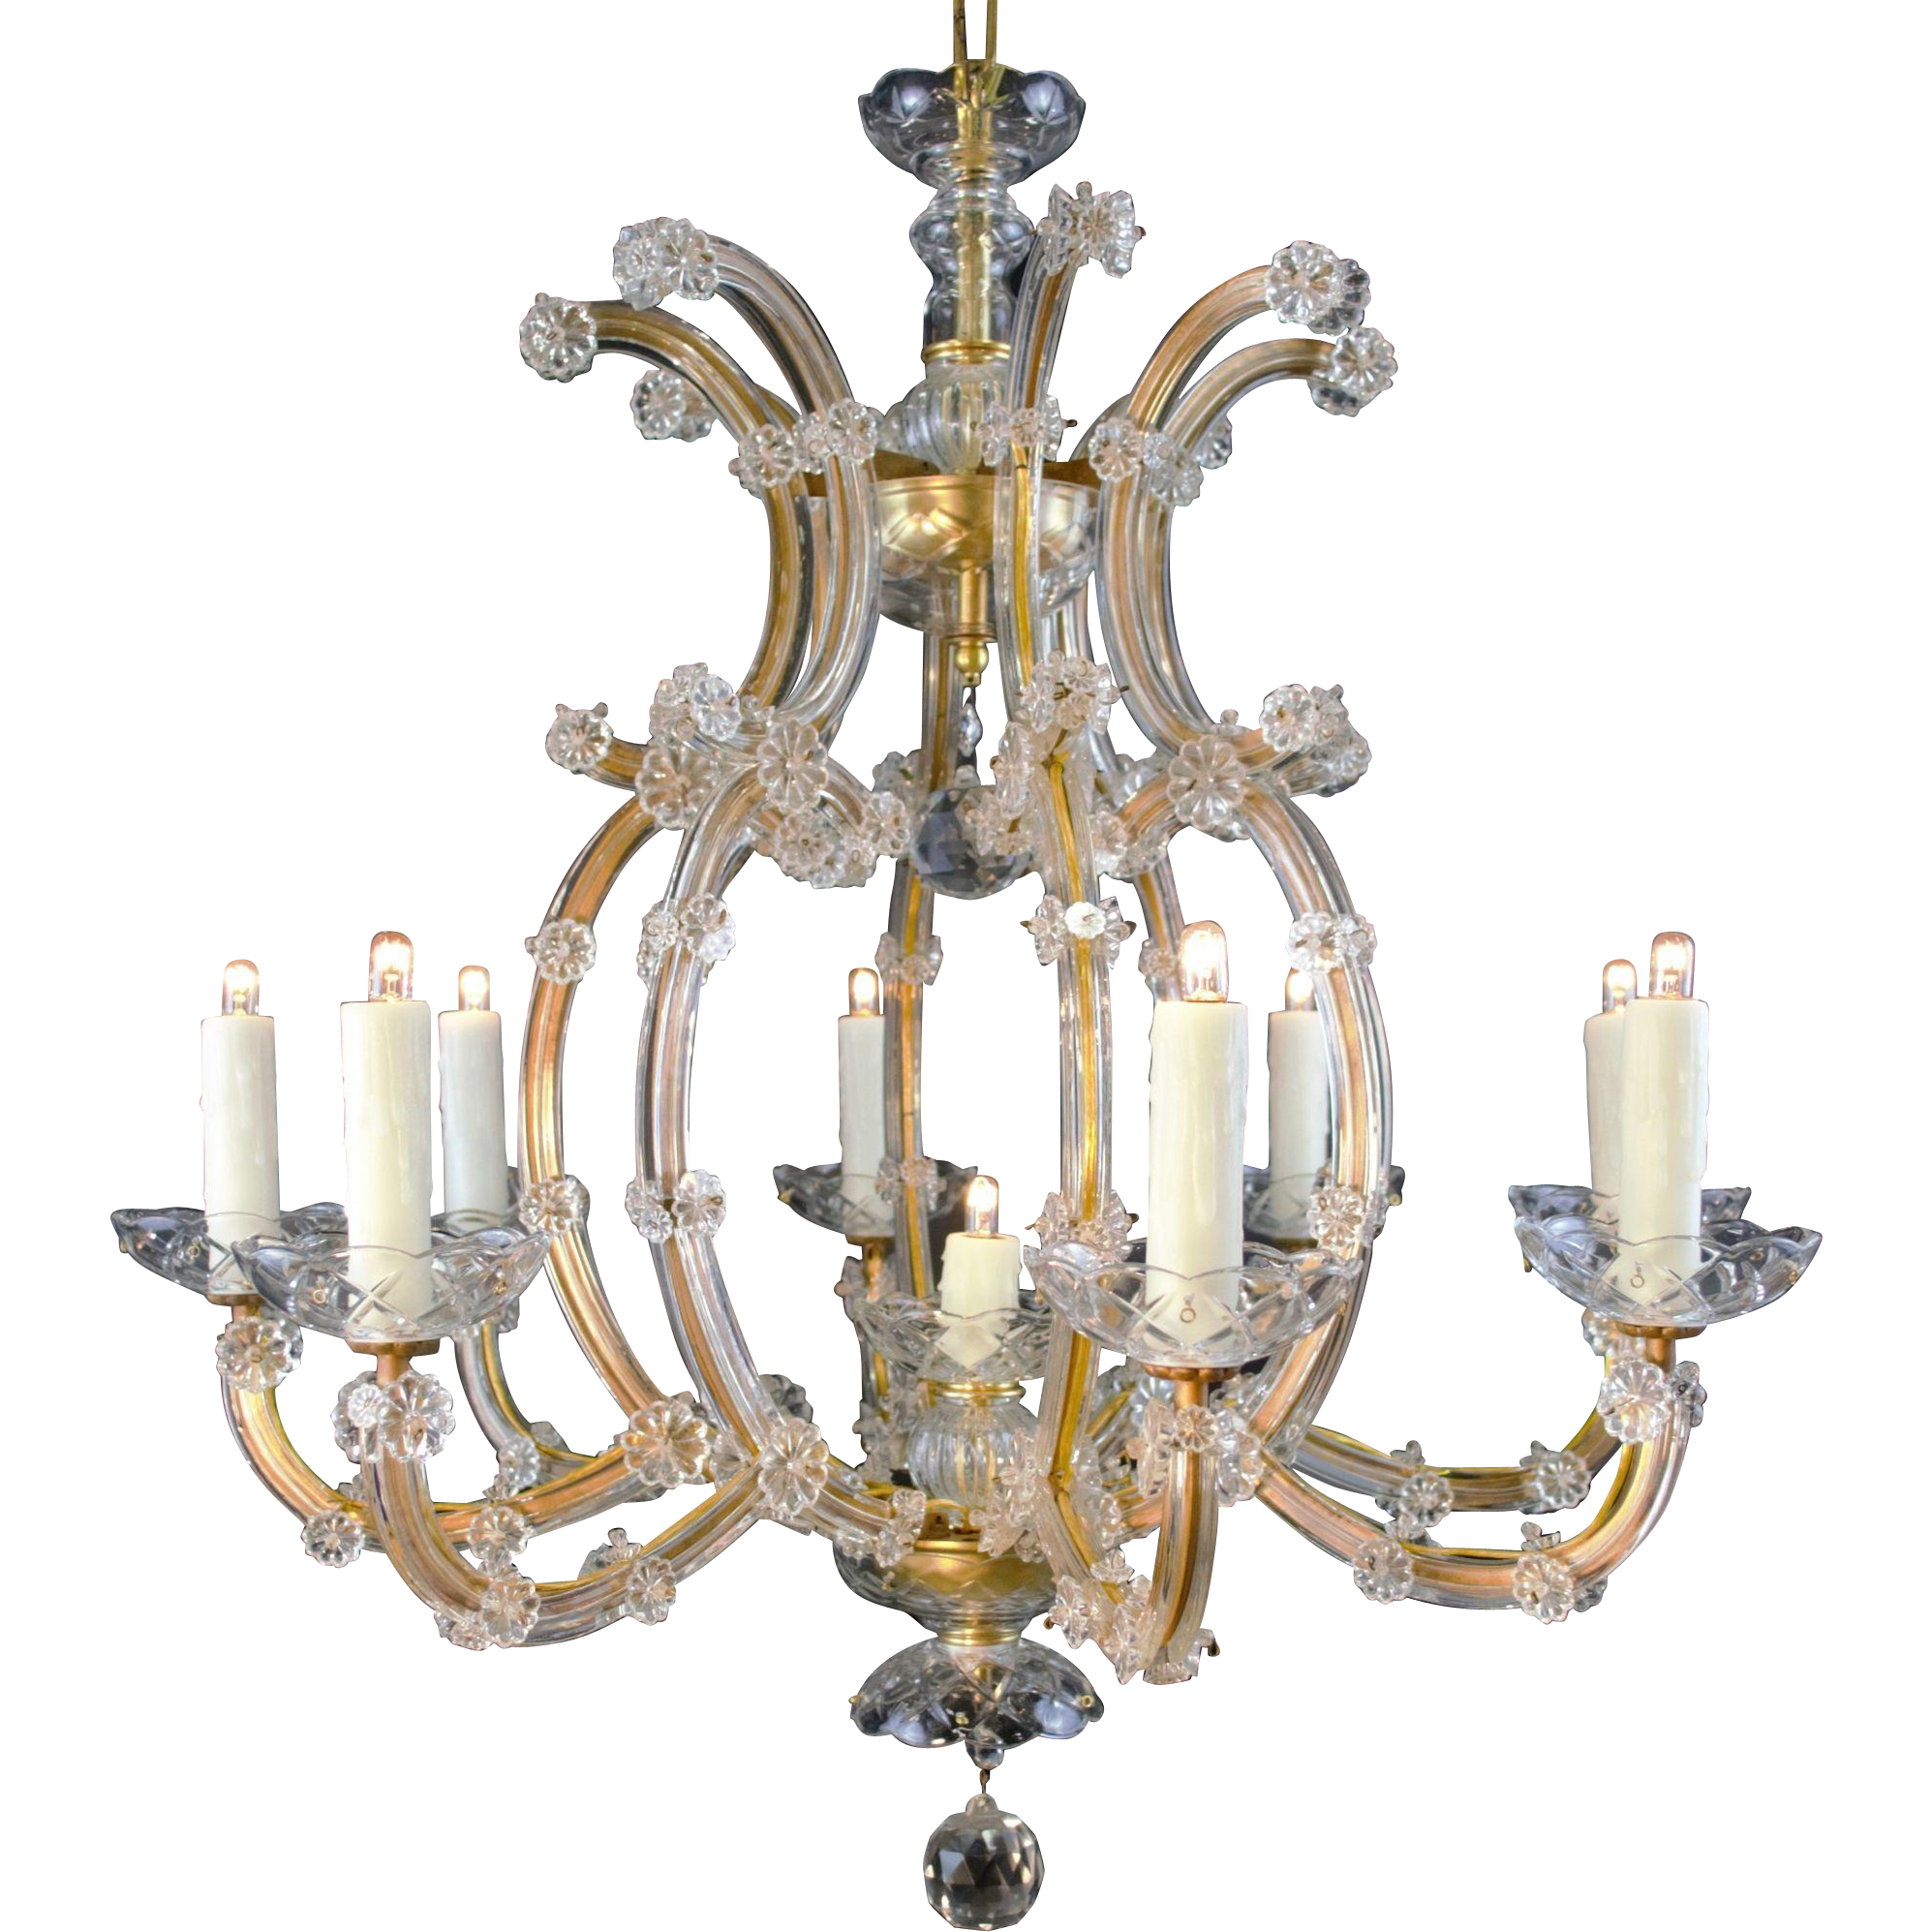 bela shack chandelier candle bohemian impex products crystal light